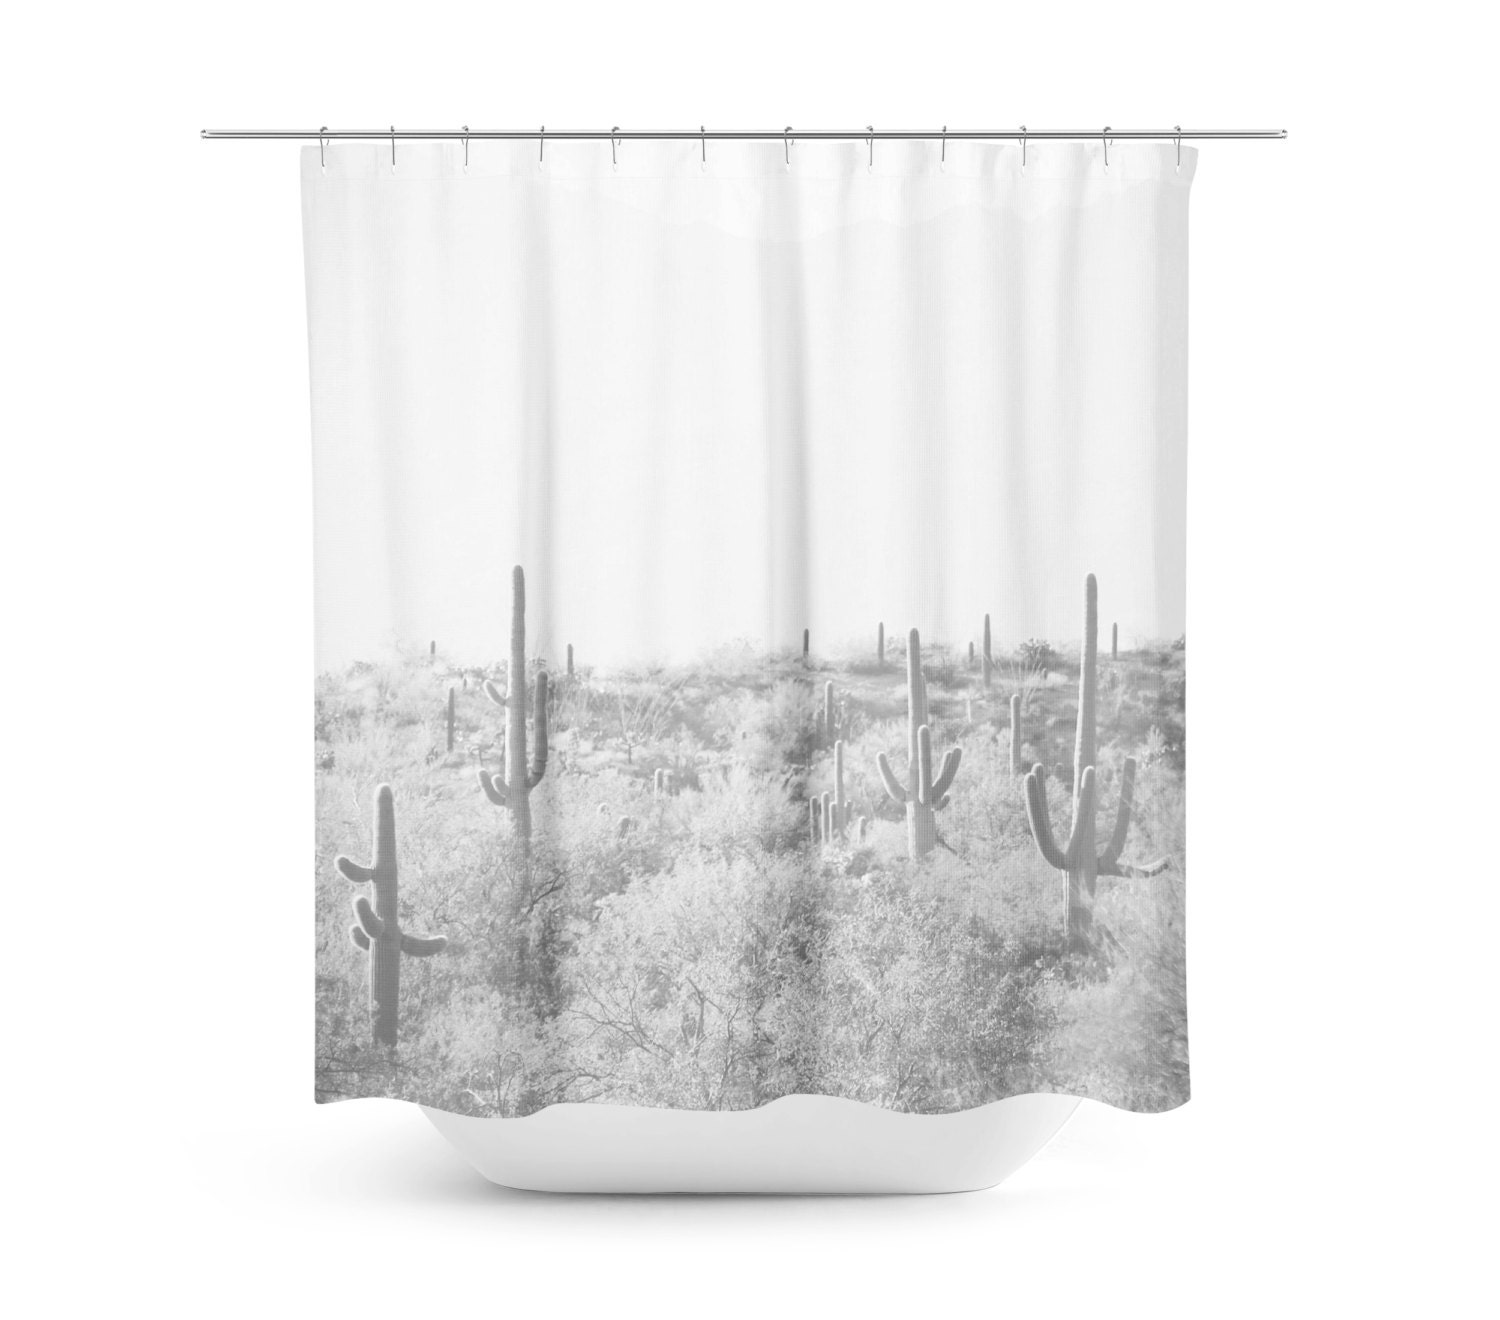 Exceptionnel Cactus Shower Curtain   Desert Home Decor   Rustic Bathroom Decor    Southwest Photo   Tucson Decor   Bathroom Decor   Black And White